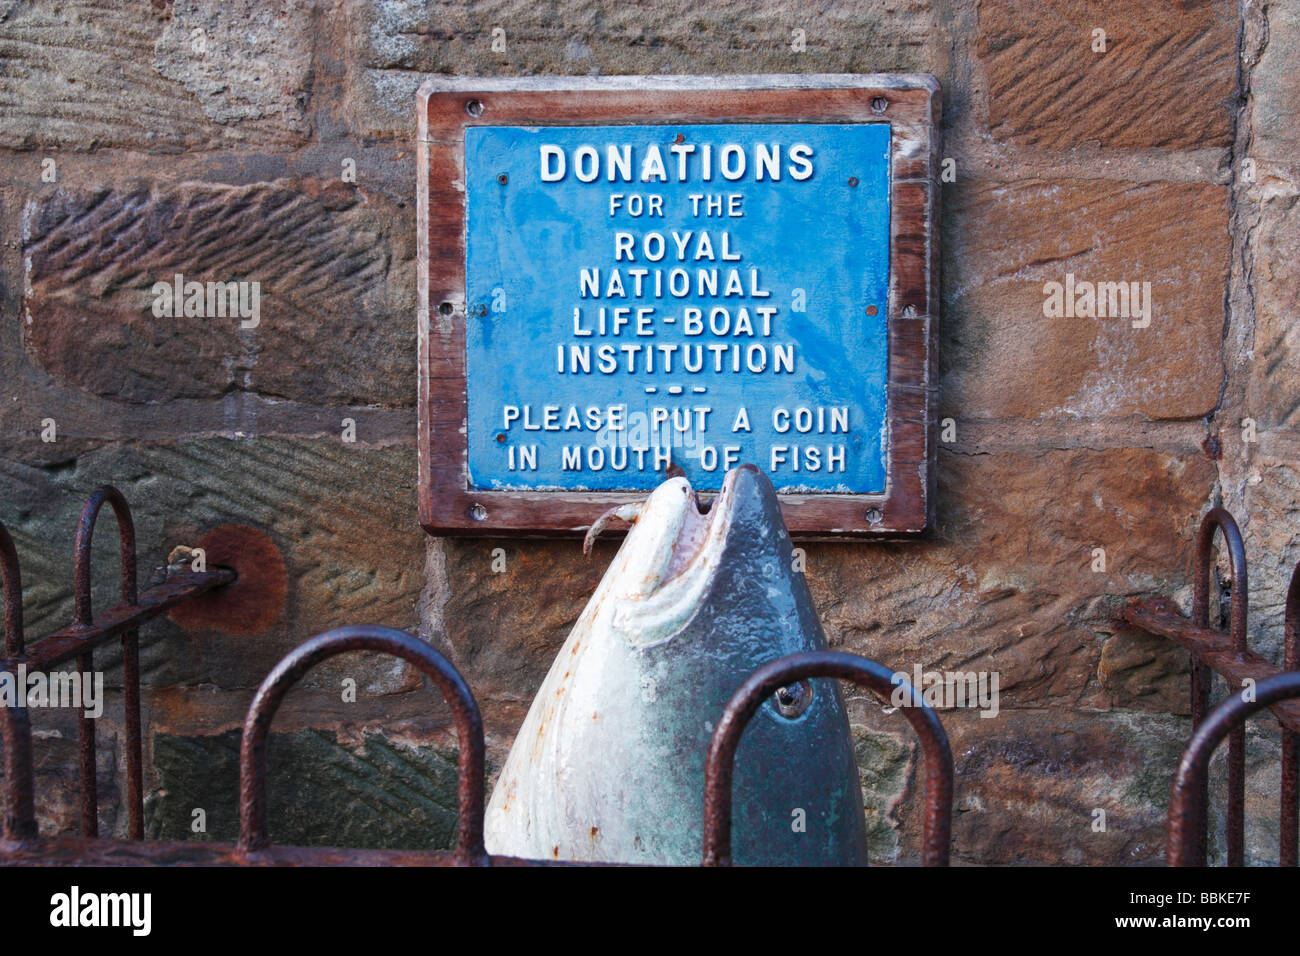 Royal National Lifeboat institution donation box in Robin Hoods Bay in North yorkshire, England, UK - Stock Image